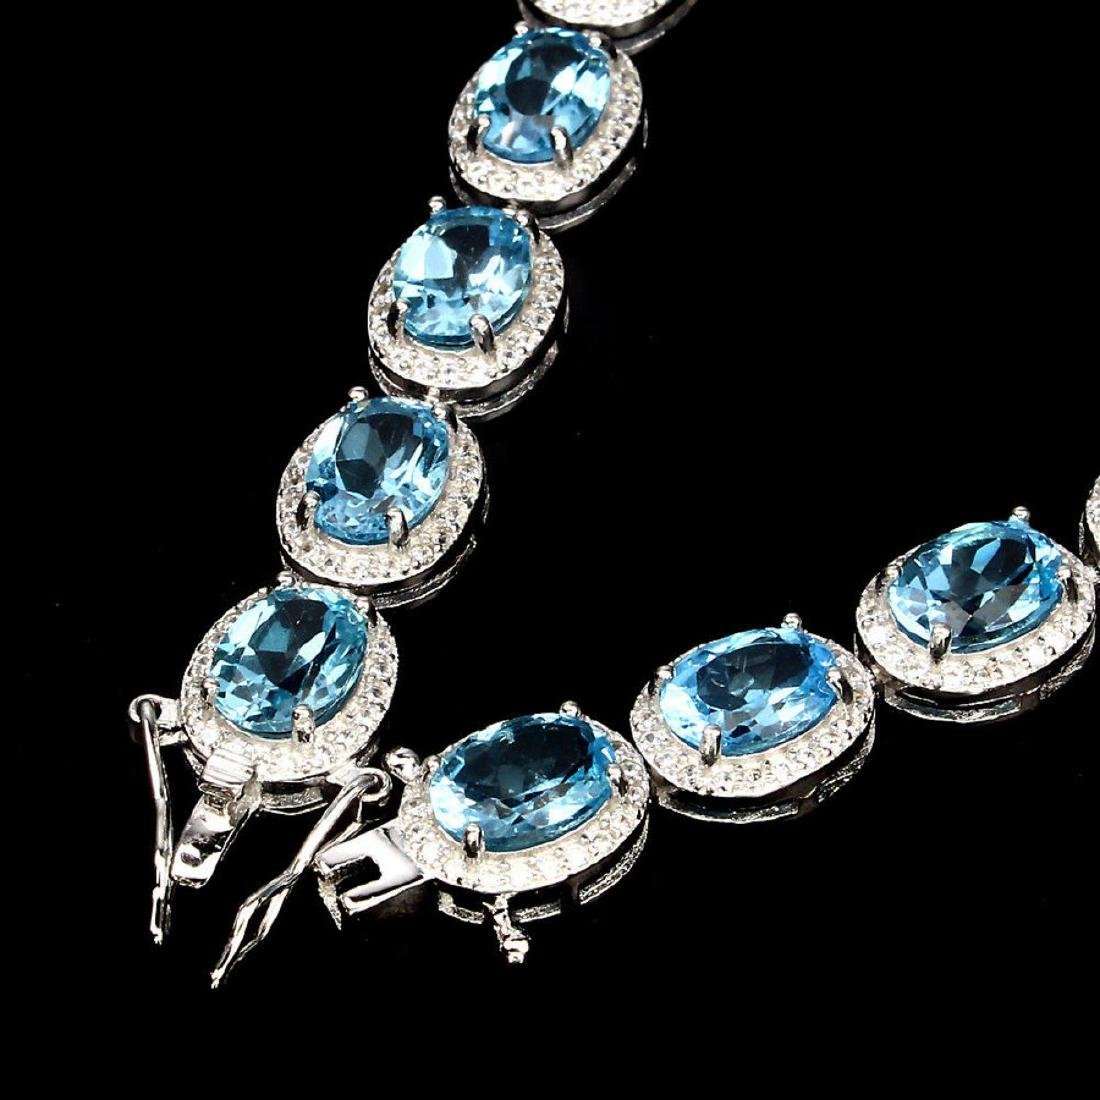 Natural Oval 8x6mm Swiss Blue Topaz Bracelet - 3